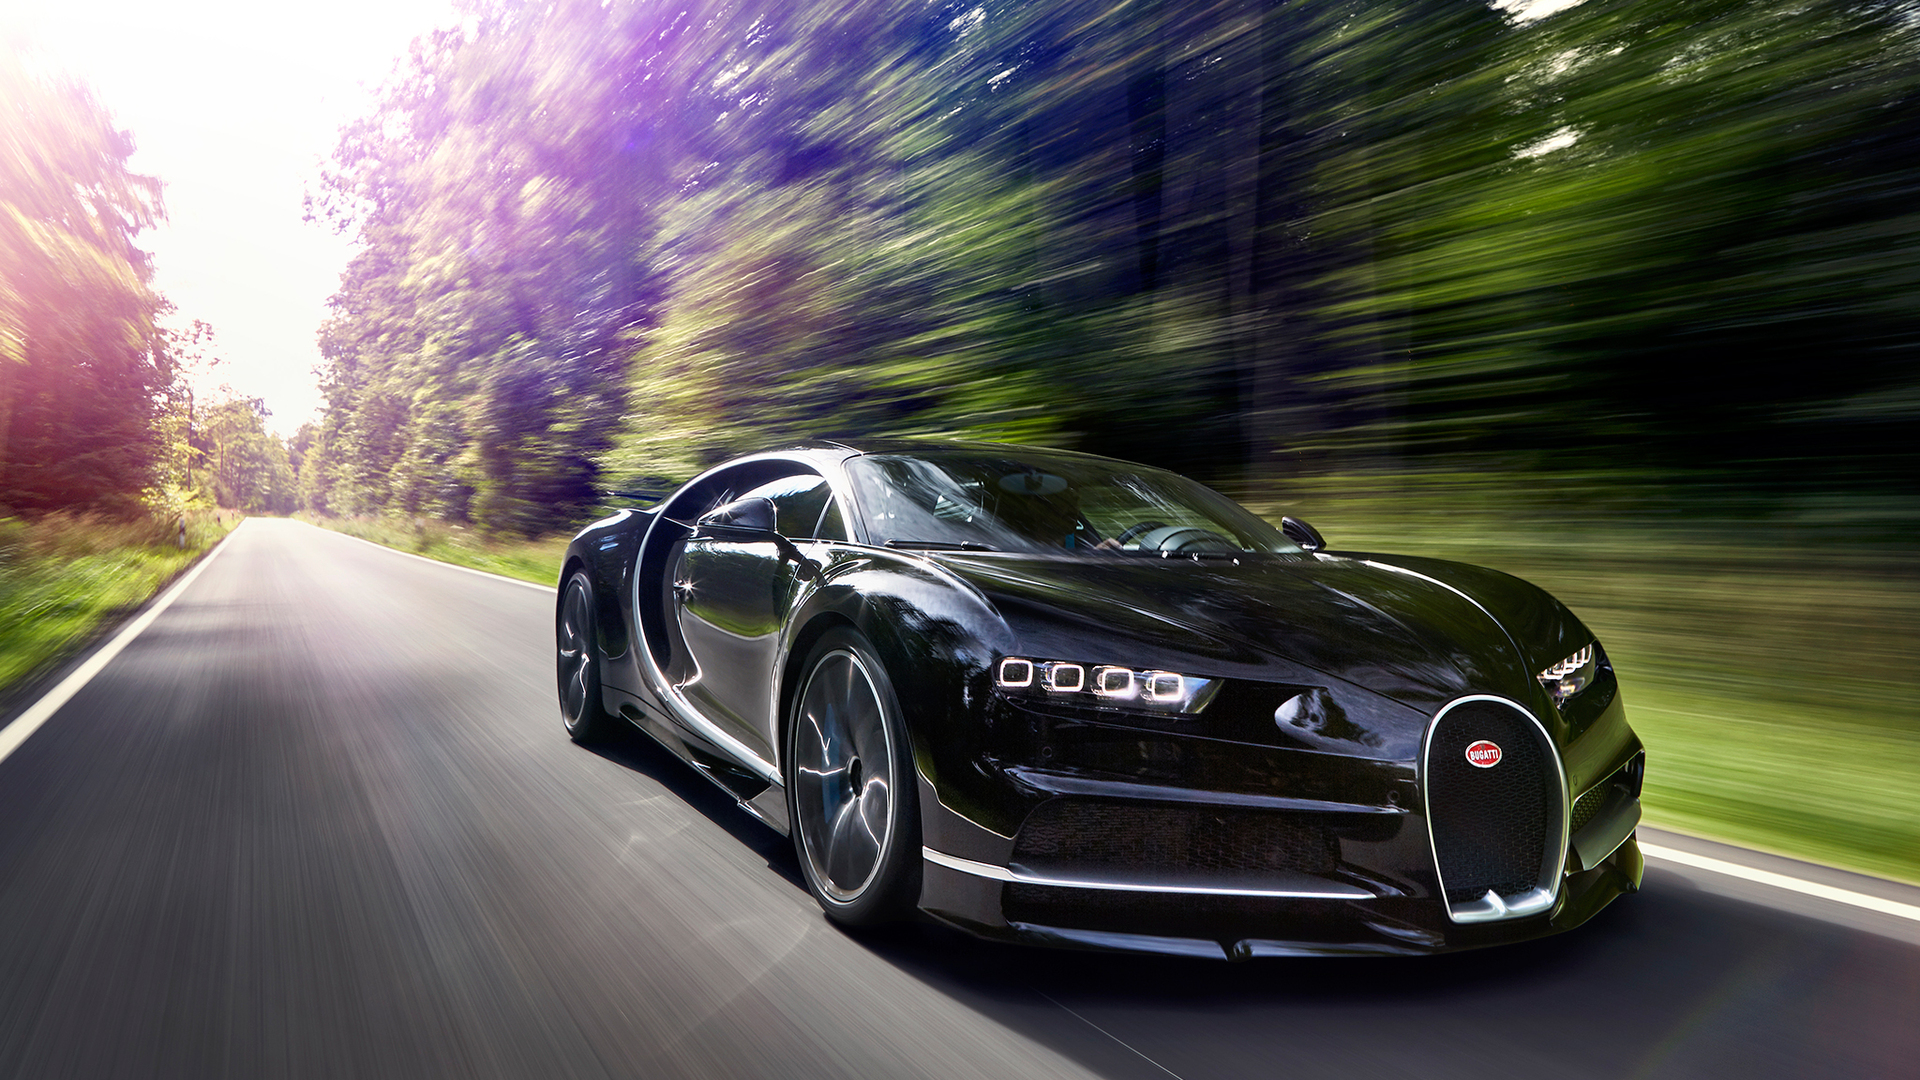 1920x1080 2017 Bugatti Chiron In Motion Laptop Full HD 1080P HD 4k Wallpapers, Images